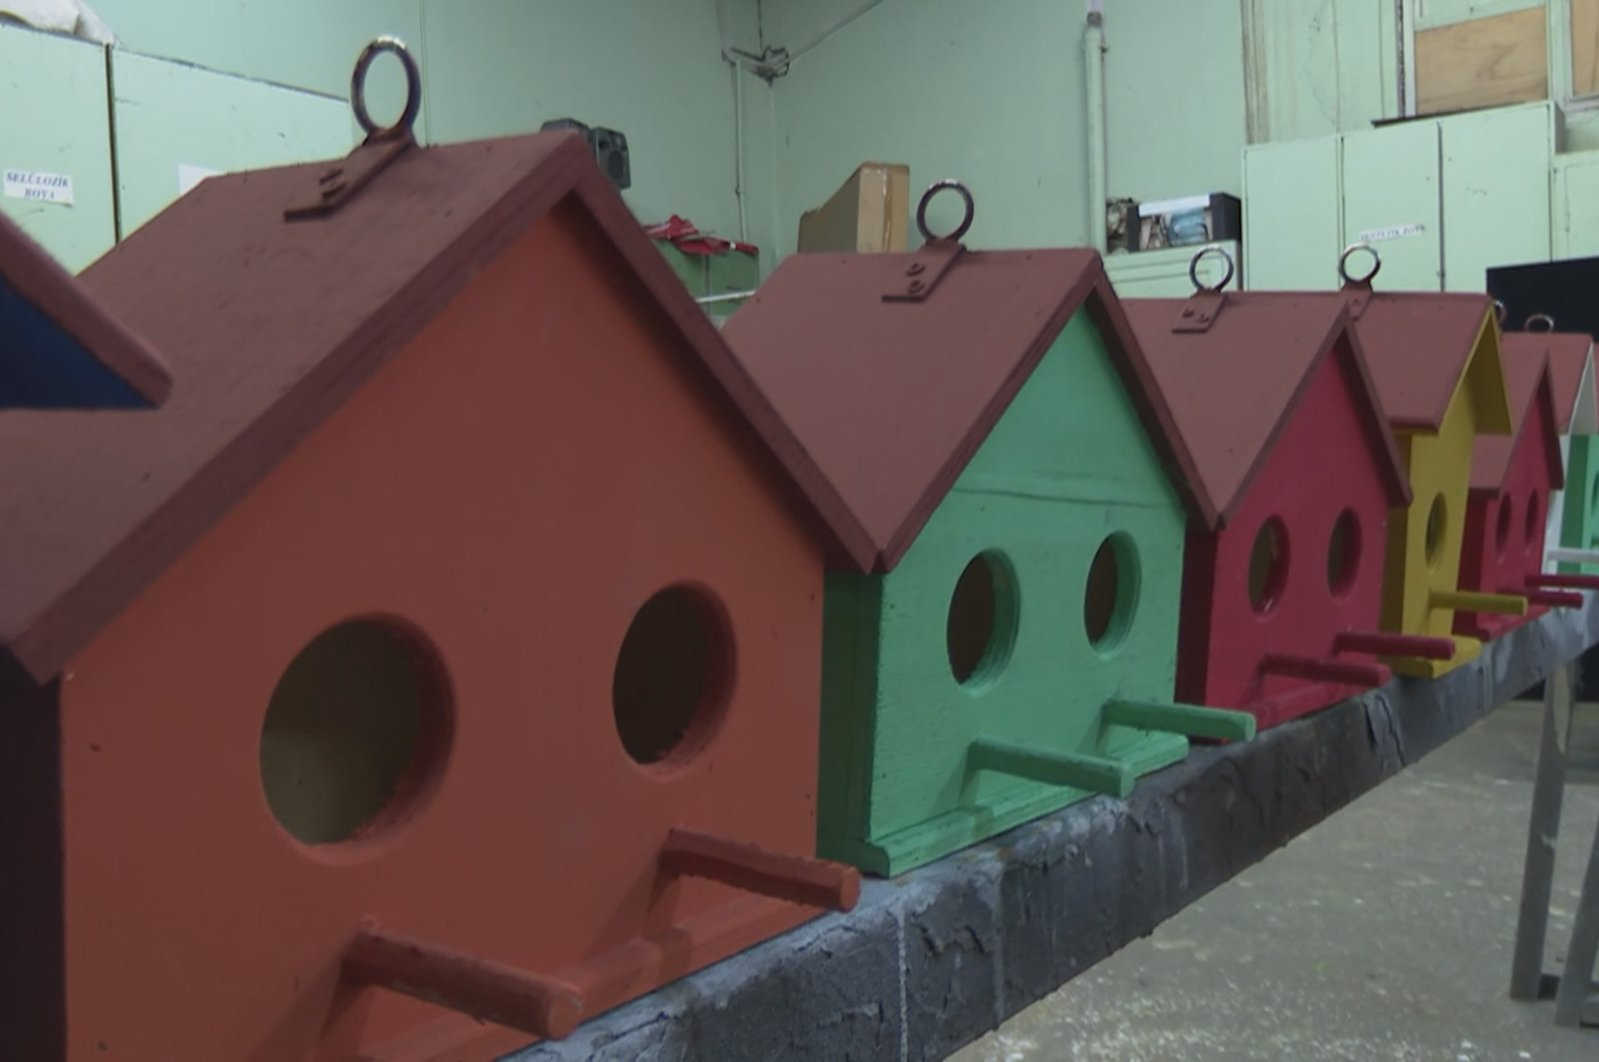 A view of the birdhouses made from props in a workshop, in Istanbul, Turkey, Oct. 27, 2020. (DHA Photo)